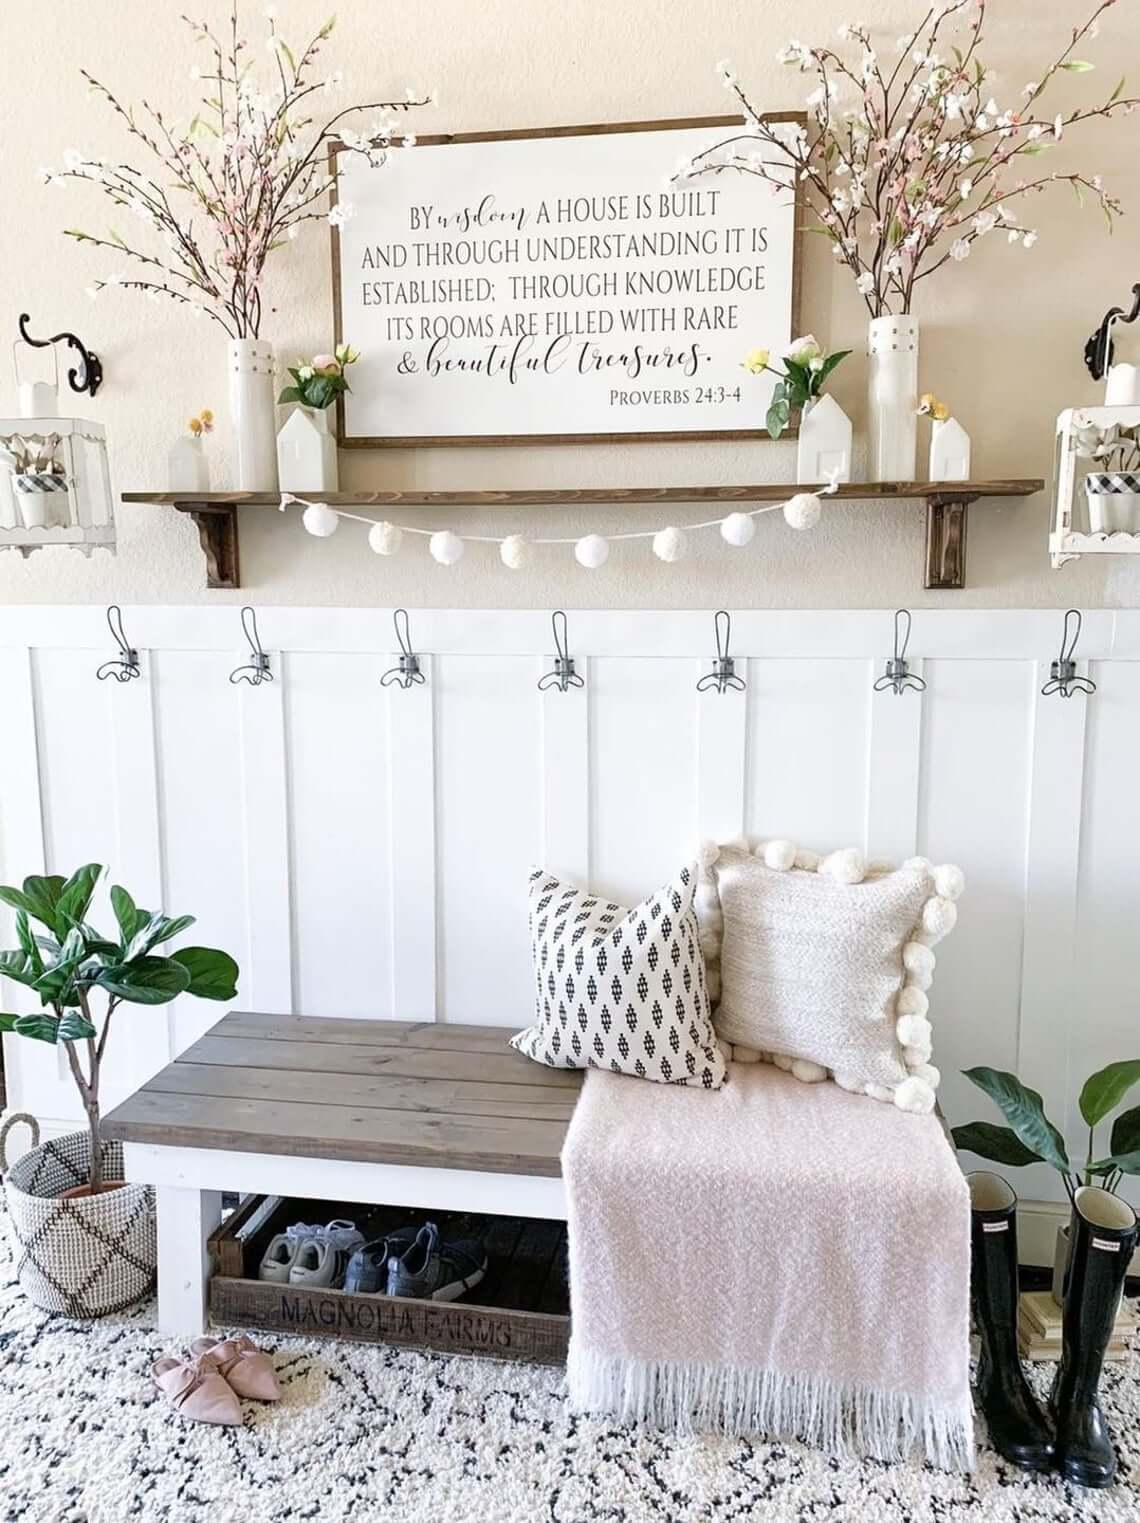 Peaceful Tranquility Eased into Your Home